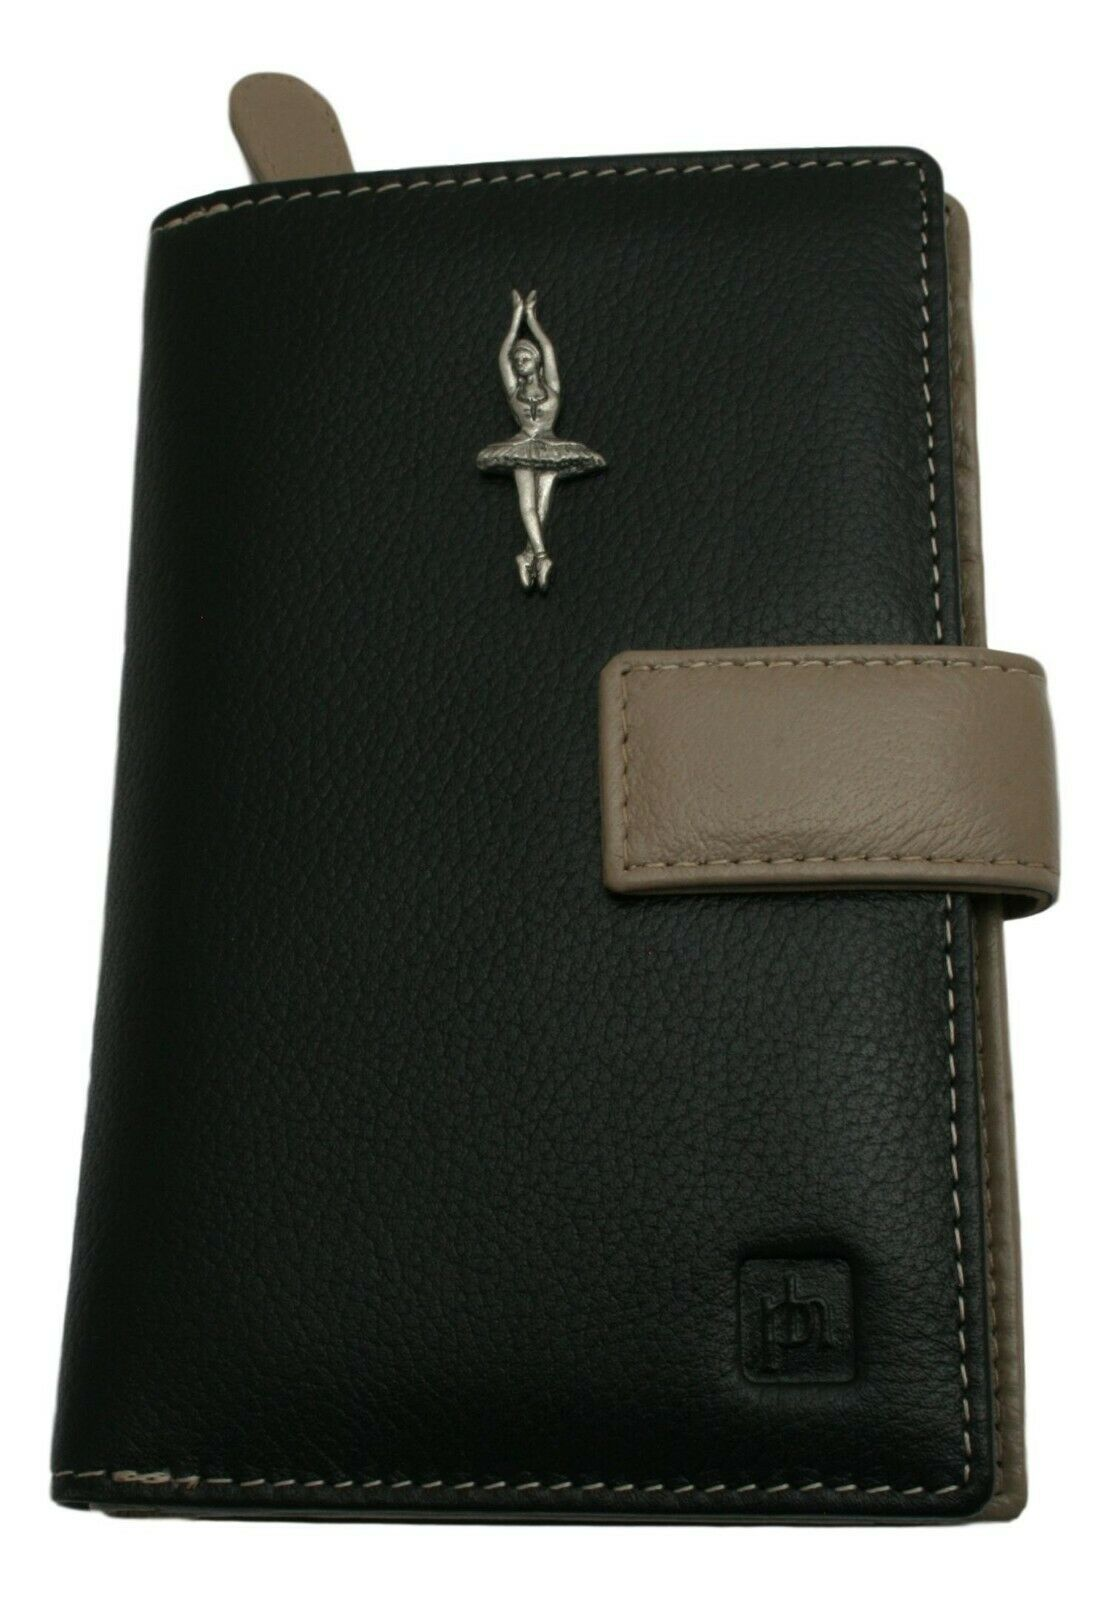 Ballerina Design Leather Purse with Zipped Pocket RFID Safe Gift 443